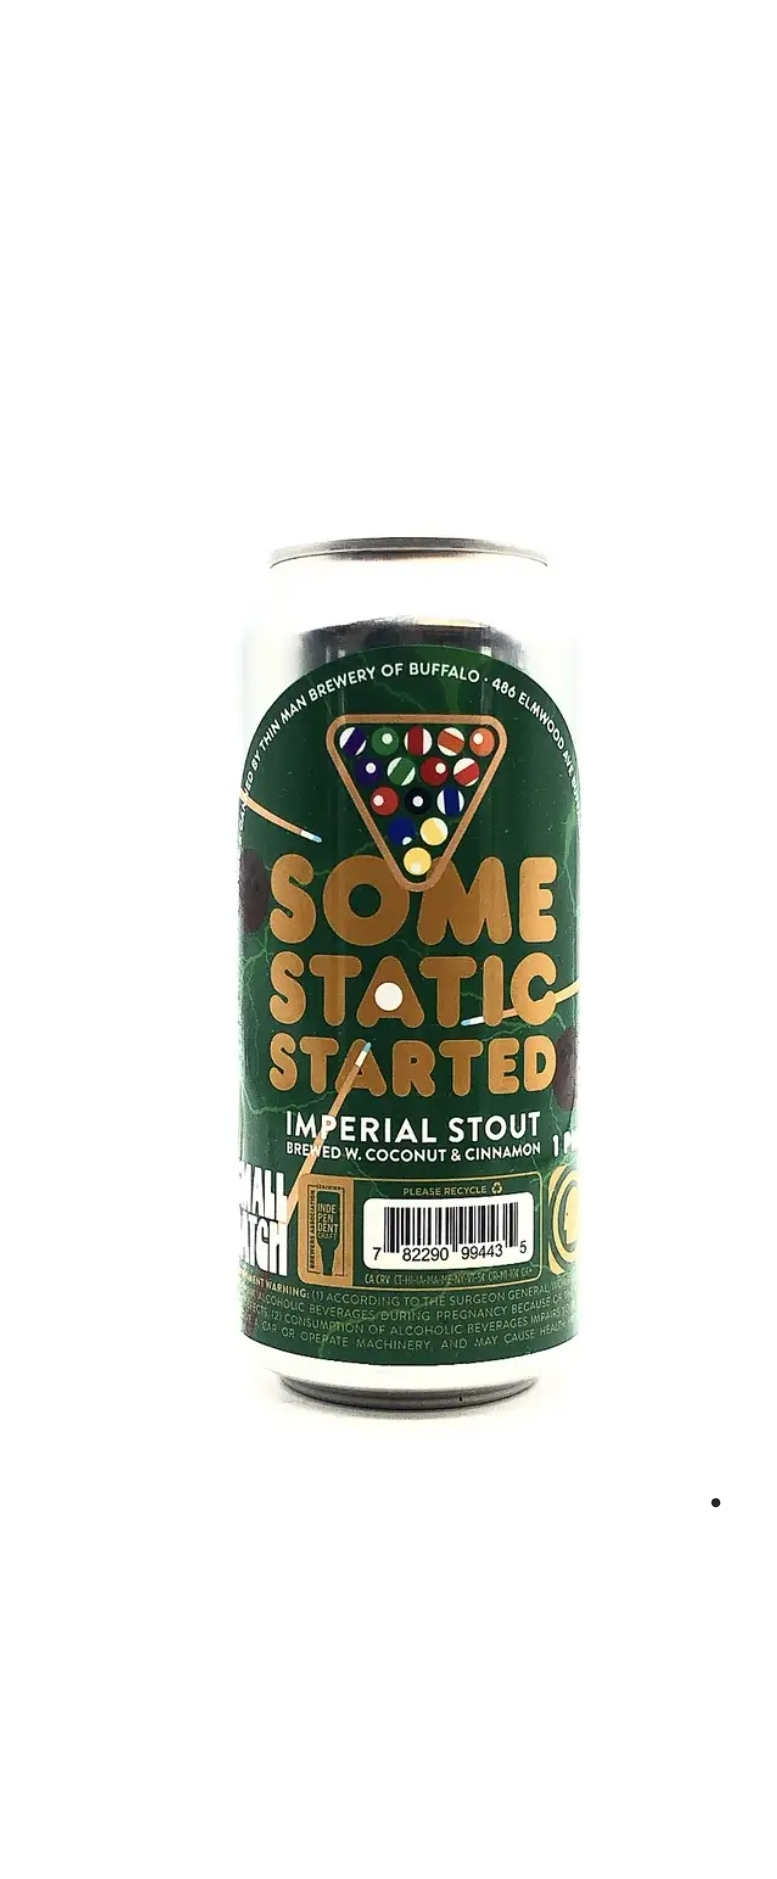 Thin Man Brewery | Some Static Started | Coconut & Cinamon Imperial Stout 8.2% 473ml